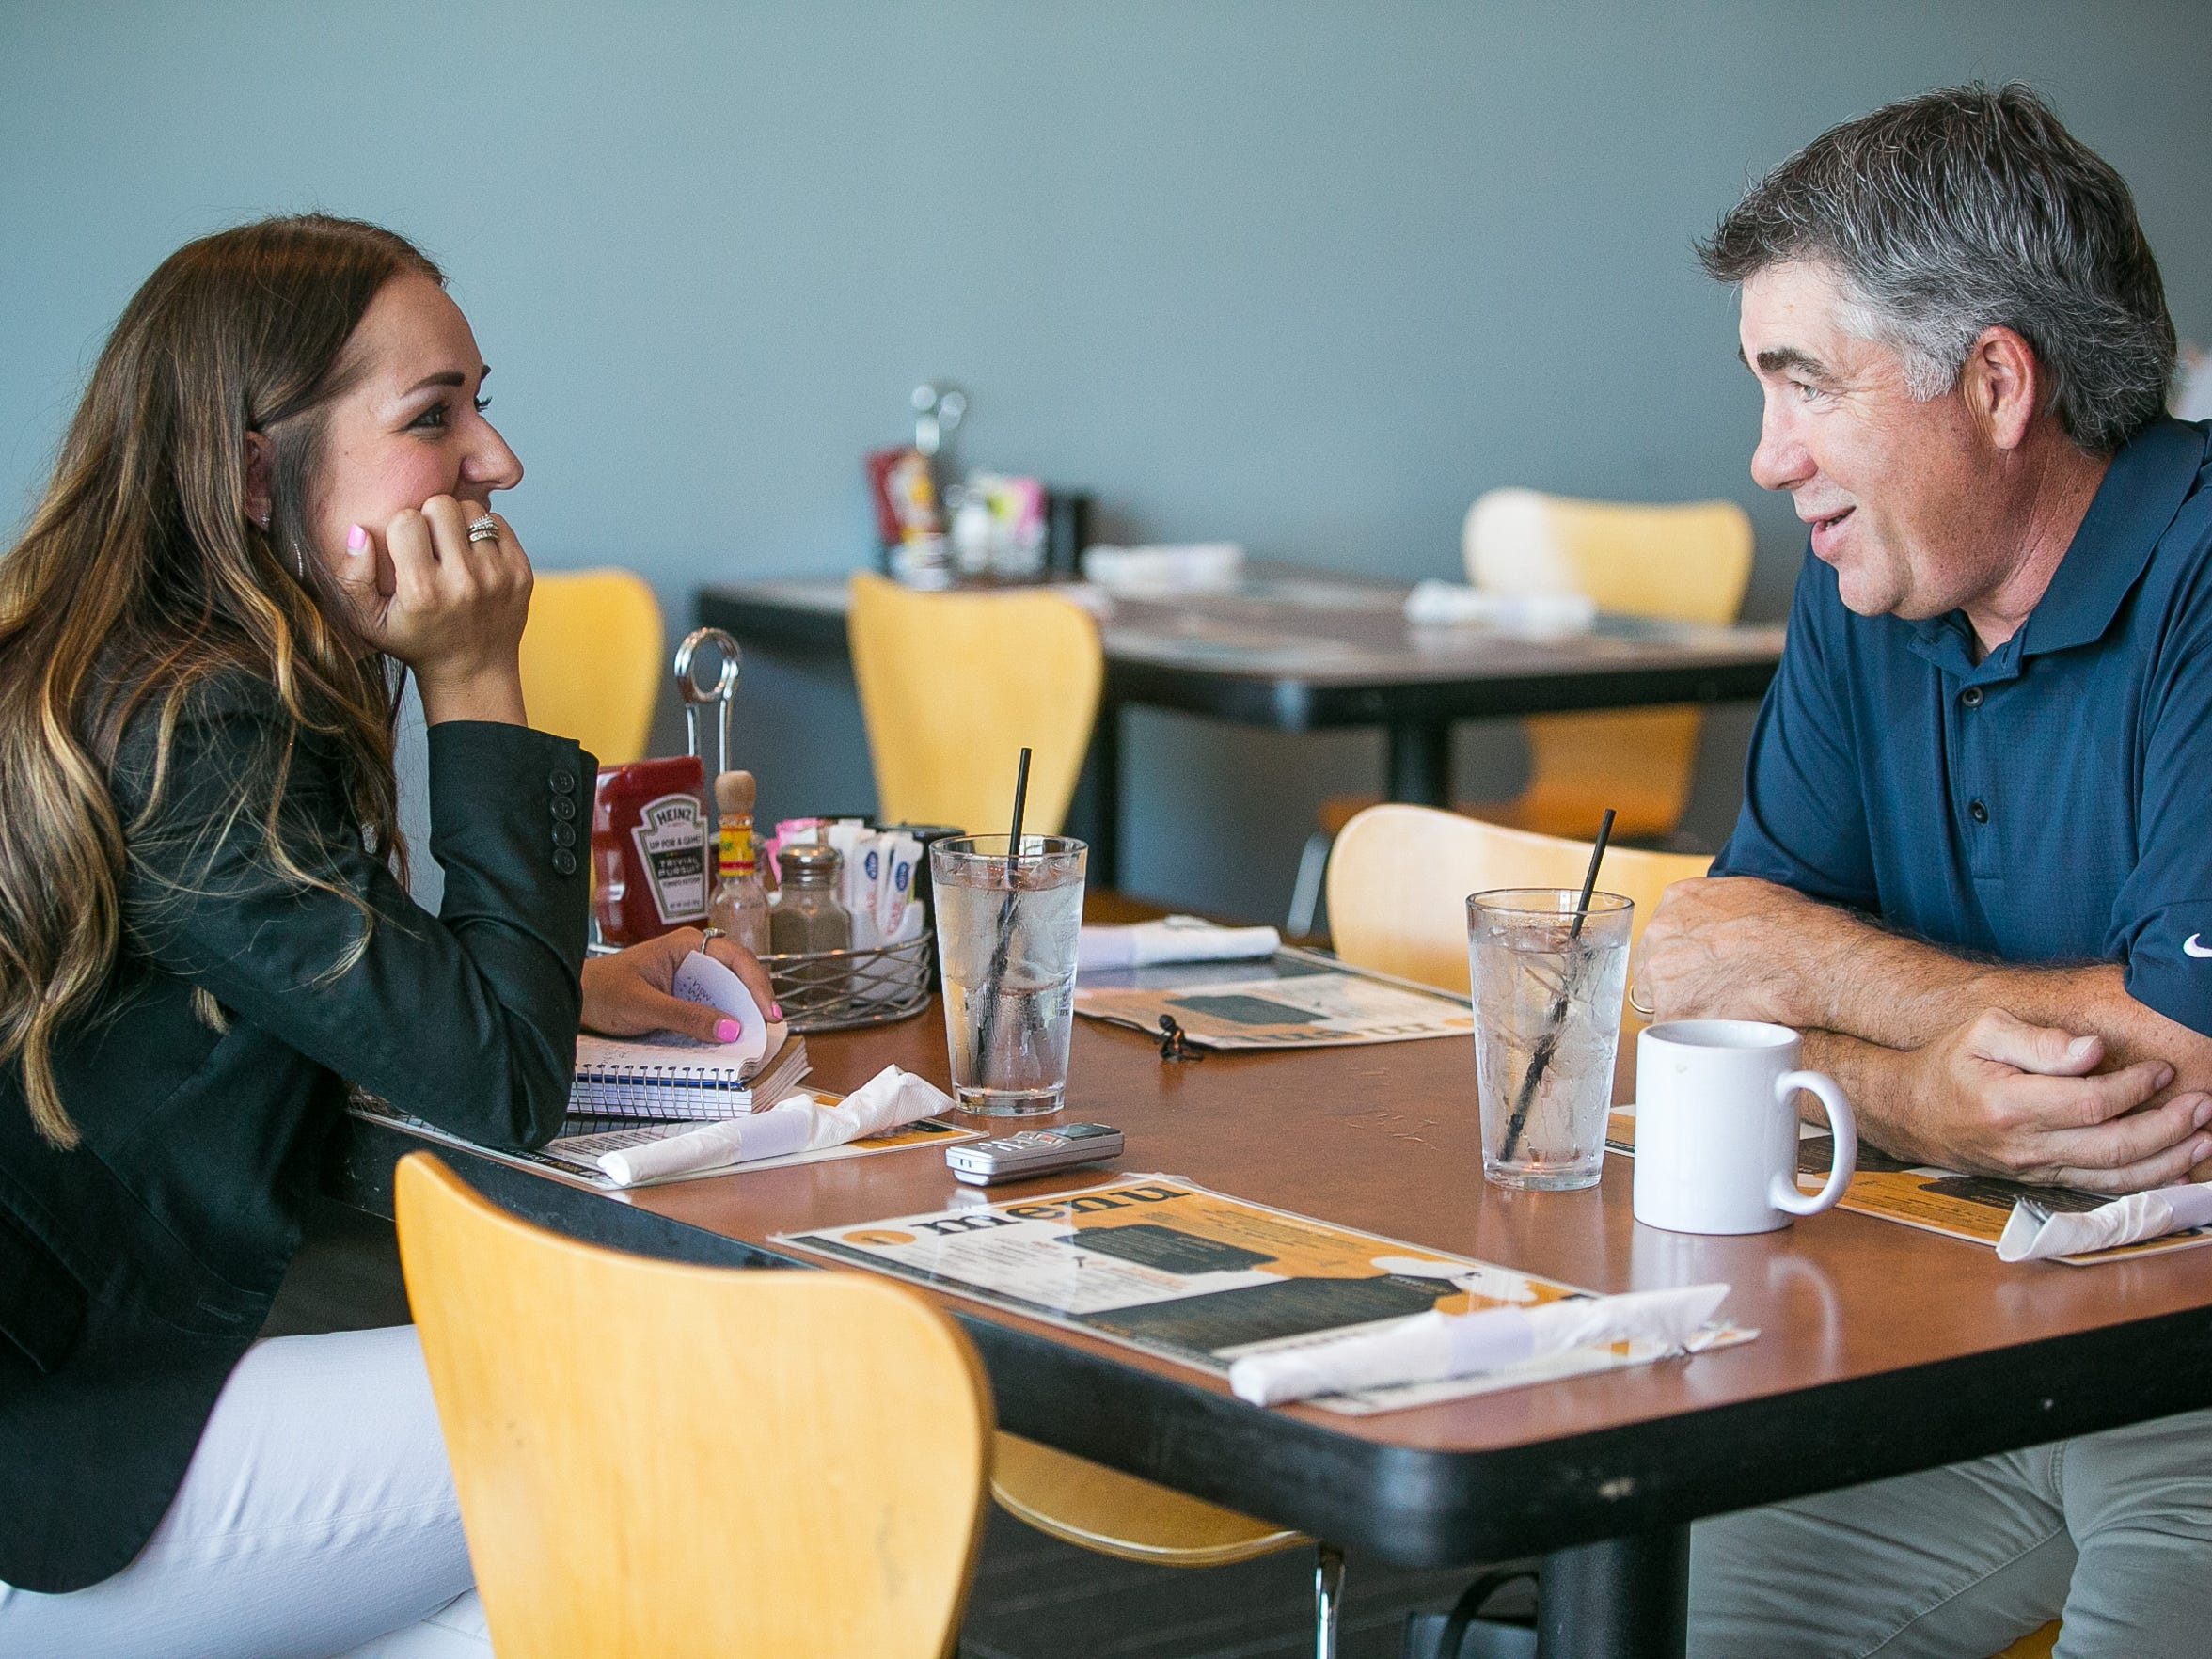 Arizona Coyotes head coach Dave Tippett talks with azcentral sports reporter Sarah McLellan in Scottsdale on Wednesday, Aug. 26, 2015.